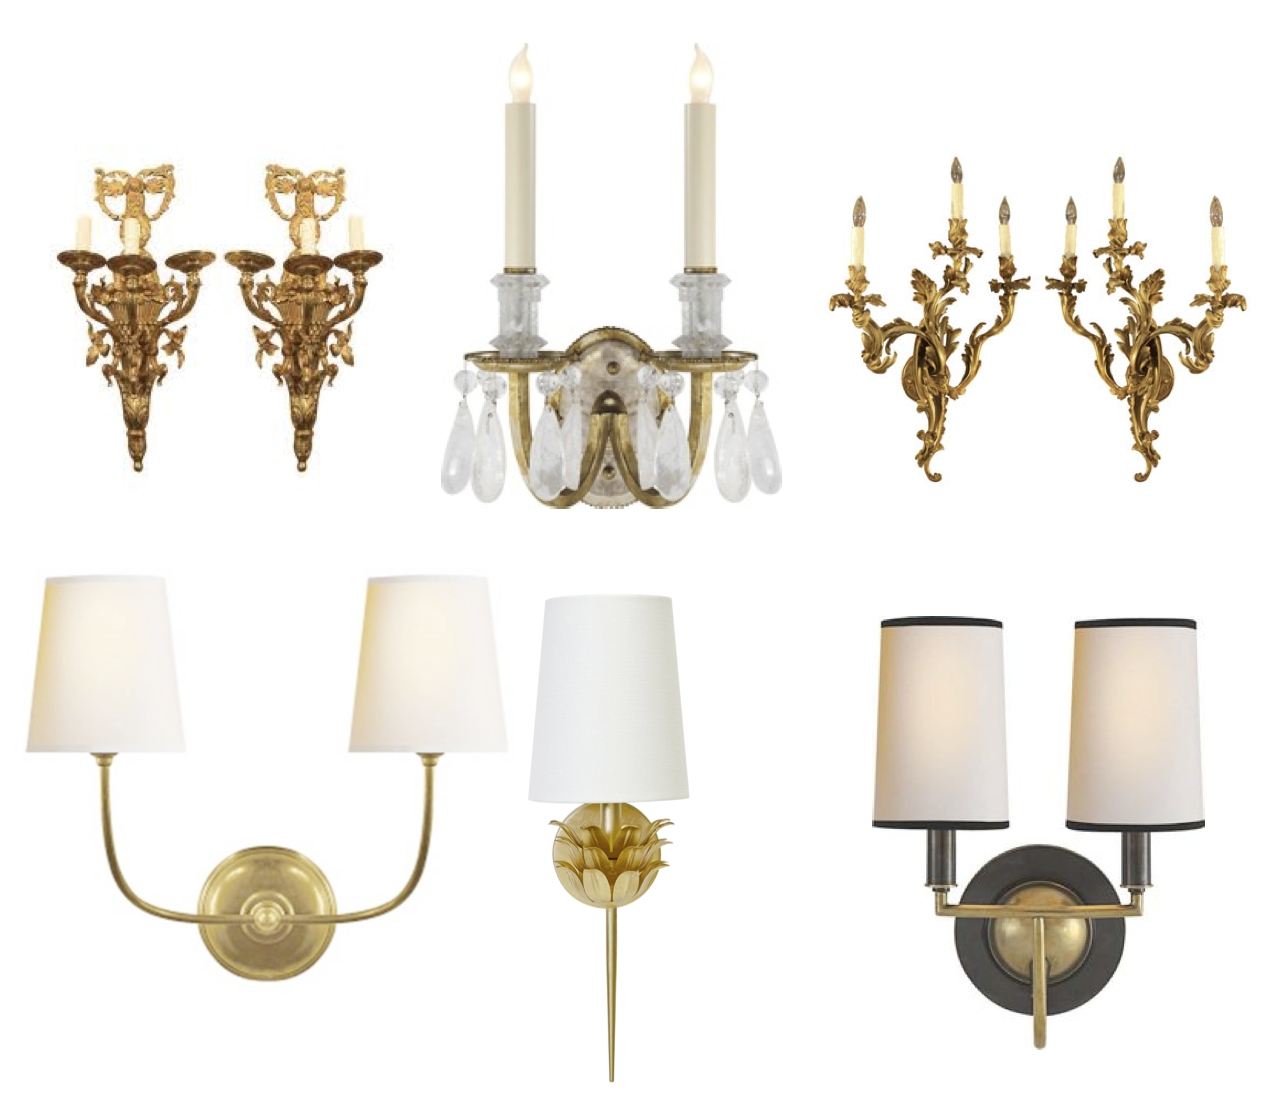 Most Popular Sconces: Wall Mounted Lighting Of Distinctive Style (View 7 of 20)